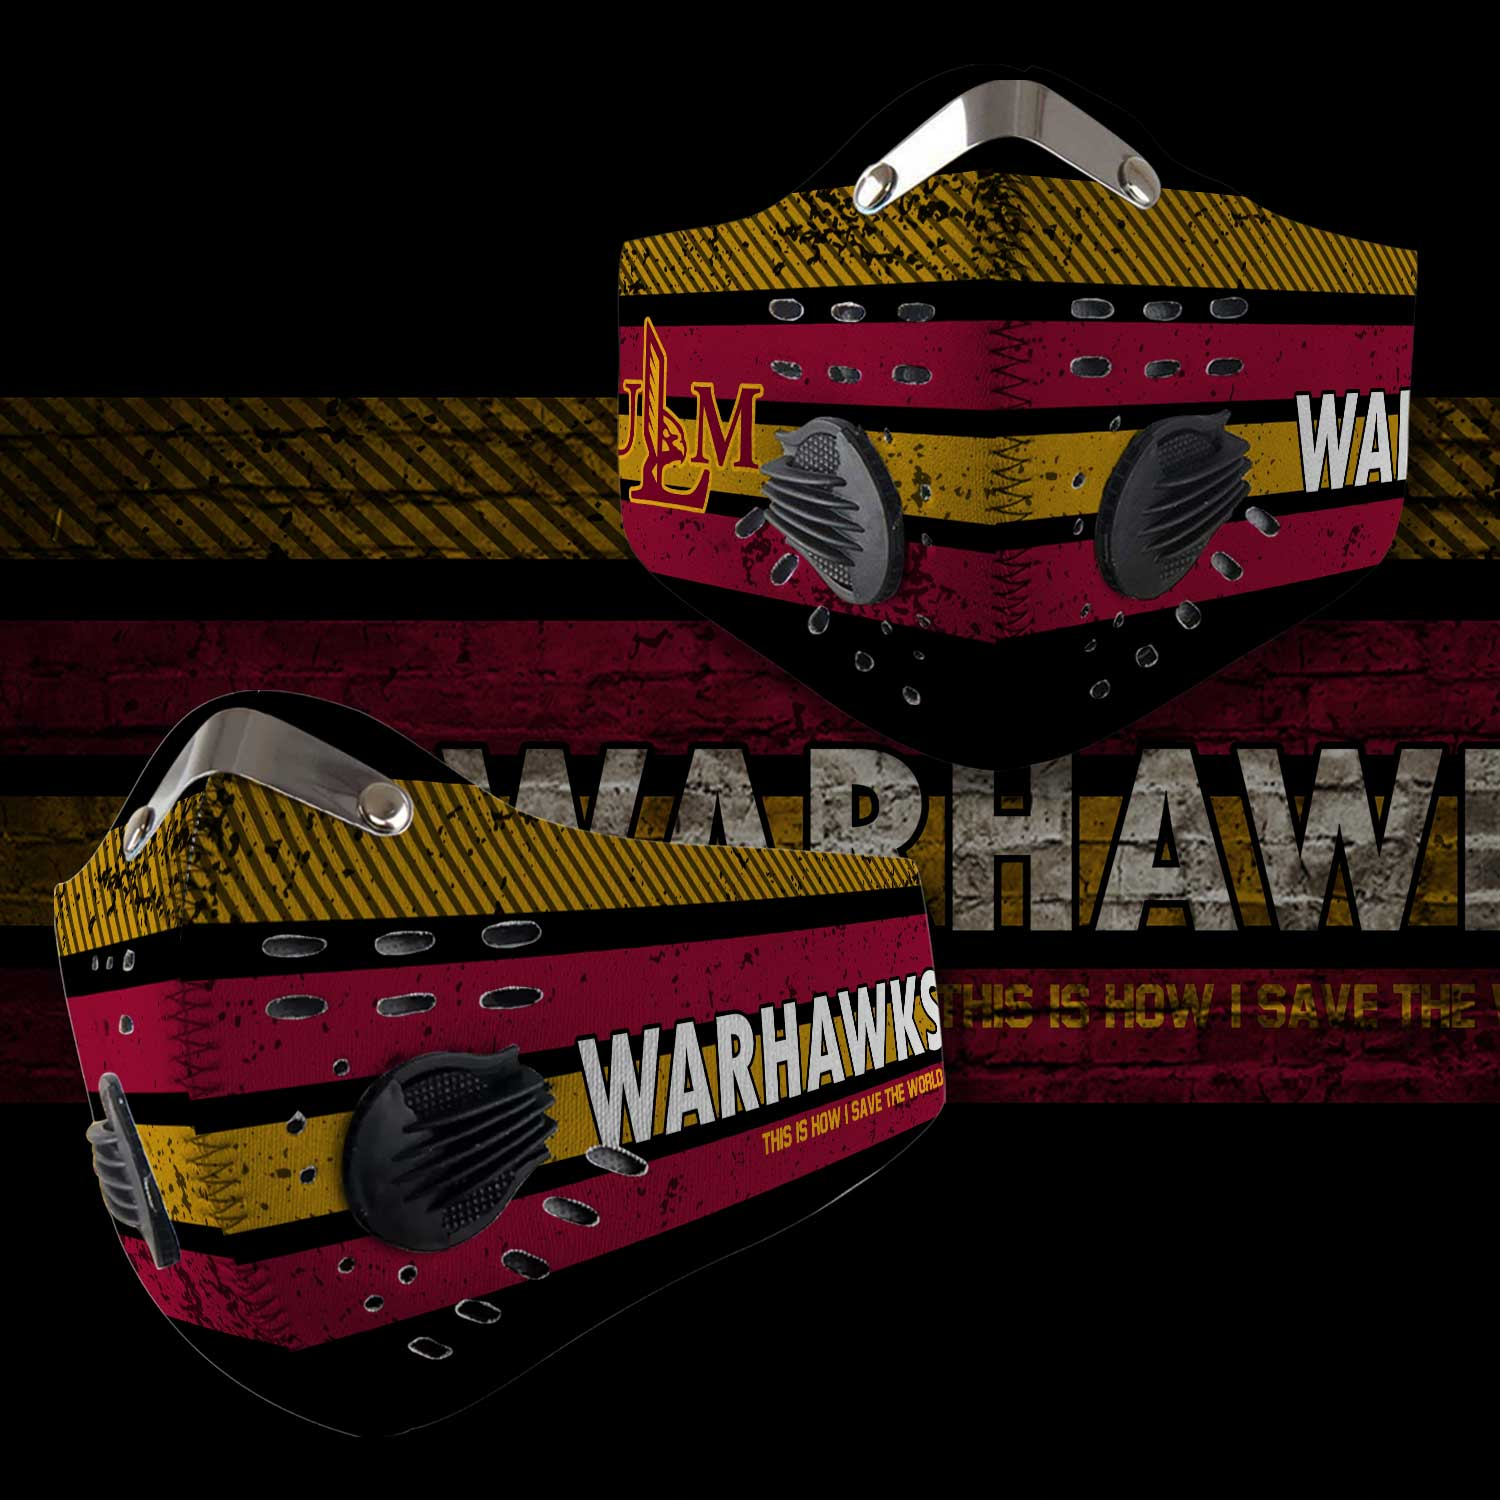 Louisiana monroe warhawks this is how i save the world face mask 2